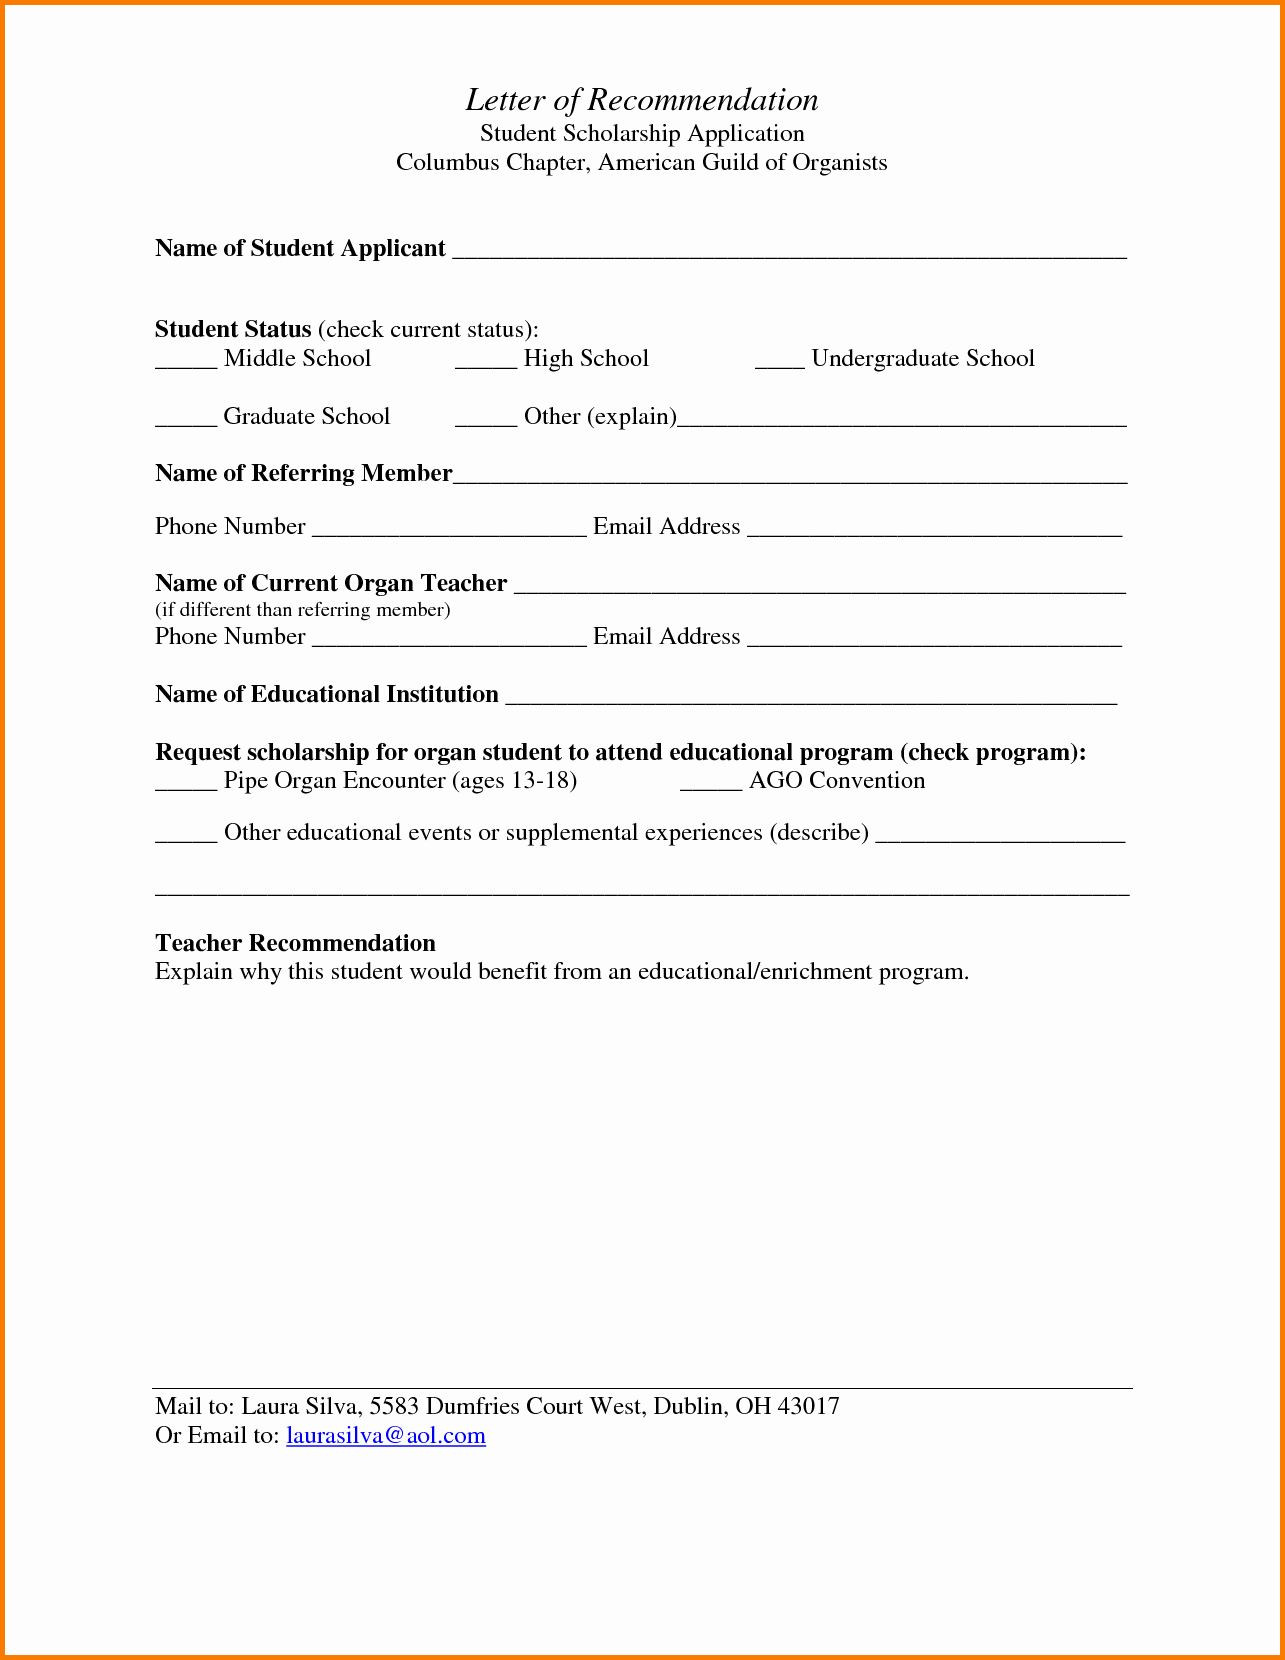 Letters Of Reference for Students Lovely 5 Letter Of Re Mendation for School Scholarship